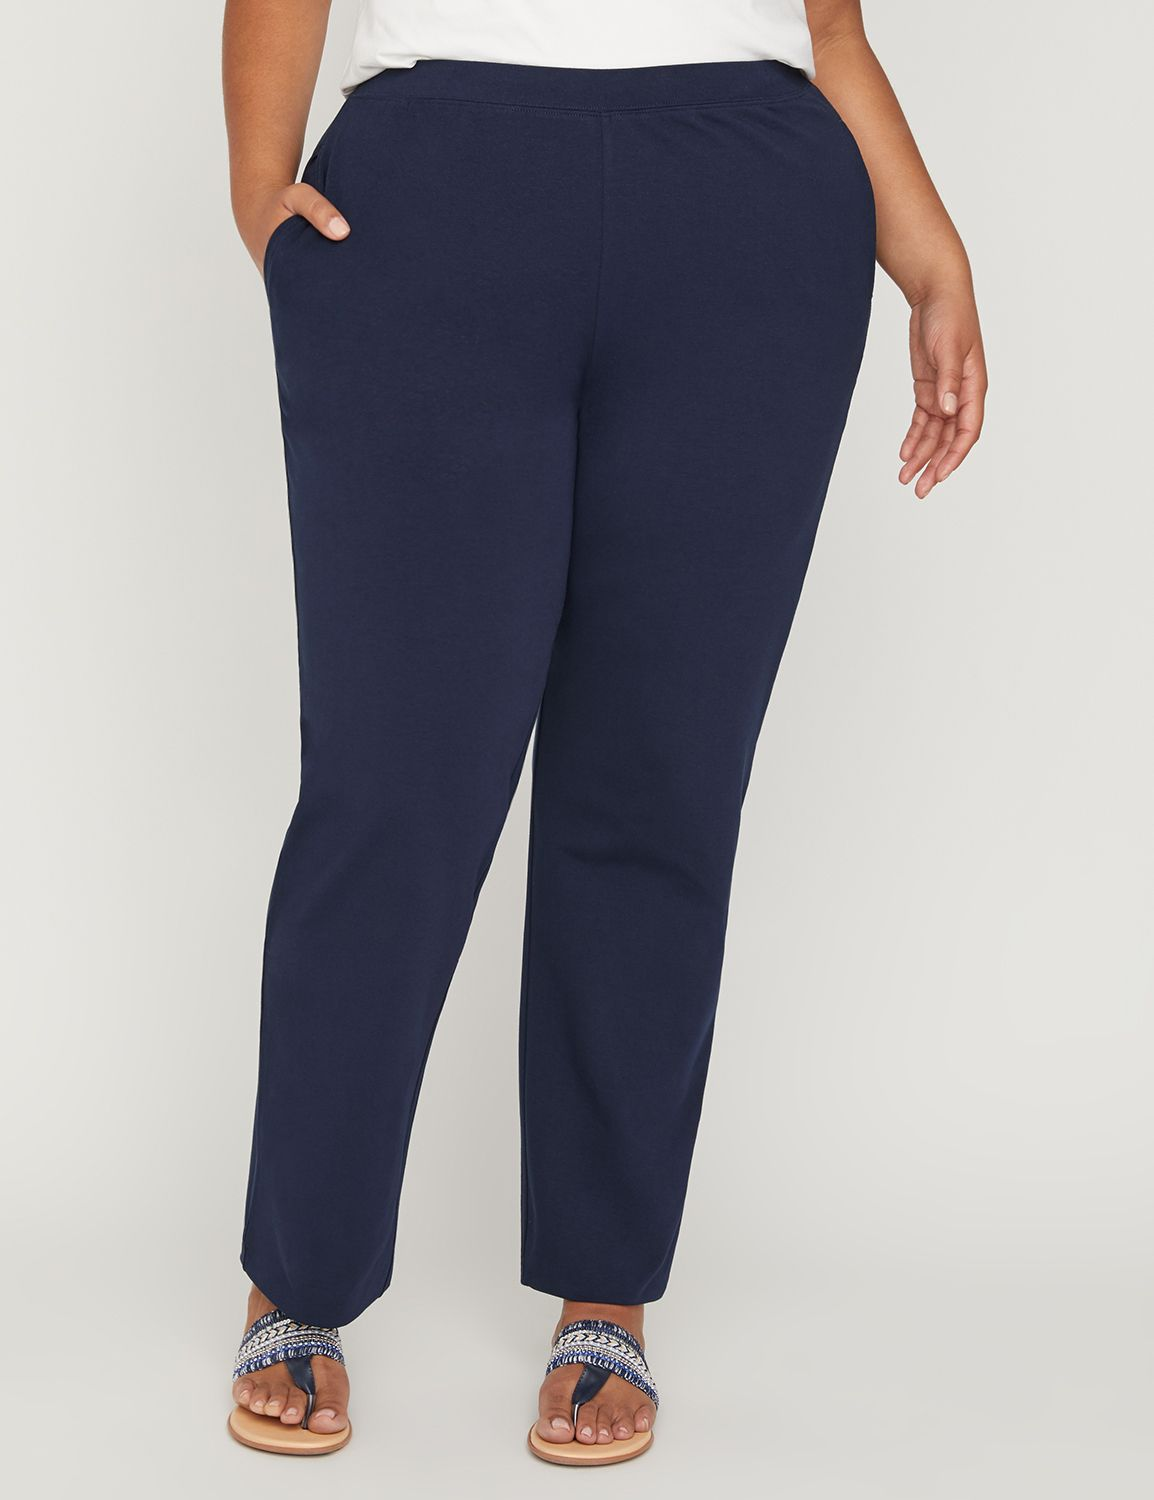 Suprema Knit Pant (Classic Colors) Suprema Knit Pant (Classic Colors) MP-300009685